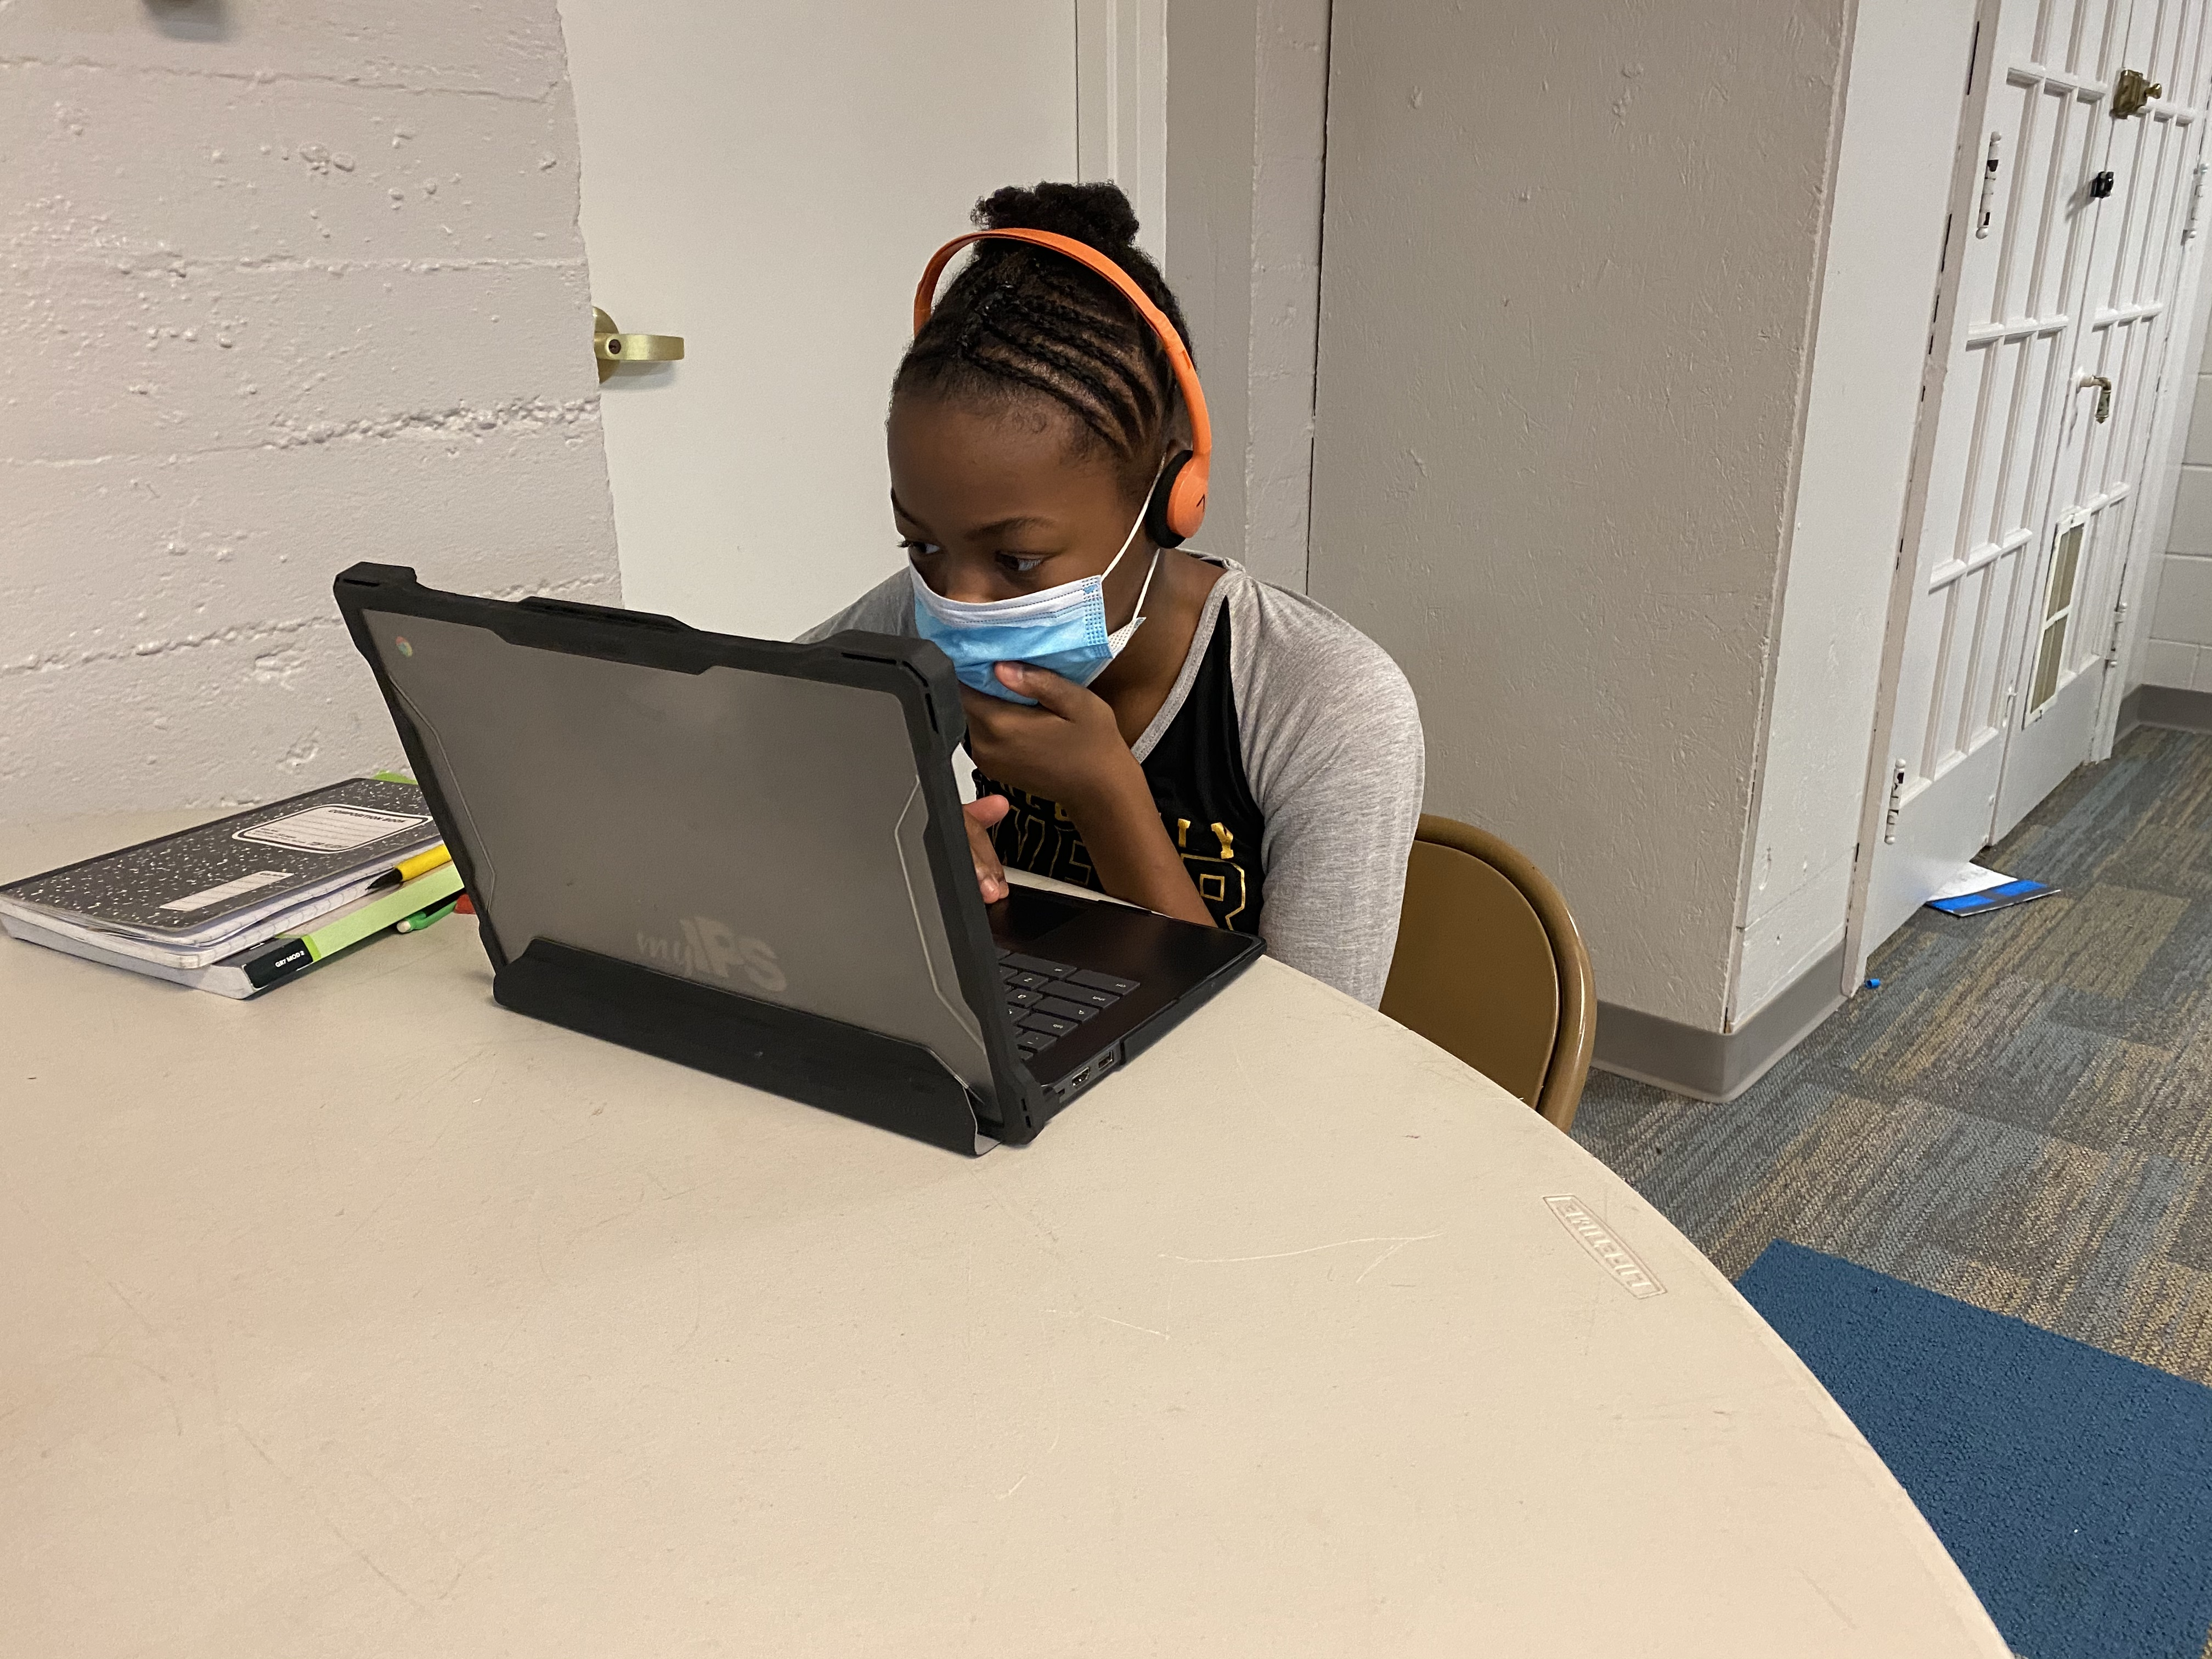 A student with a mask covering her face sits at a table looking at a laptop screen